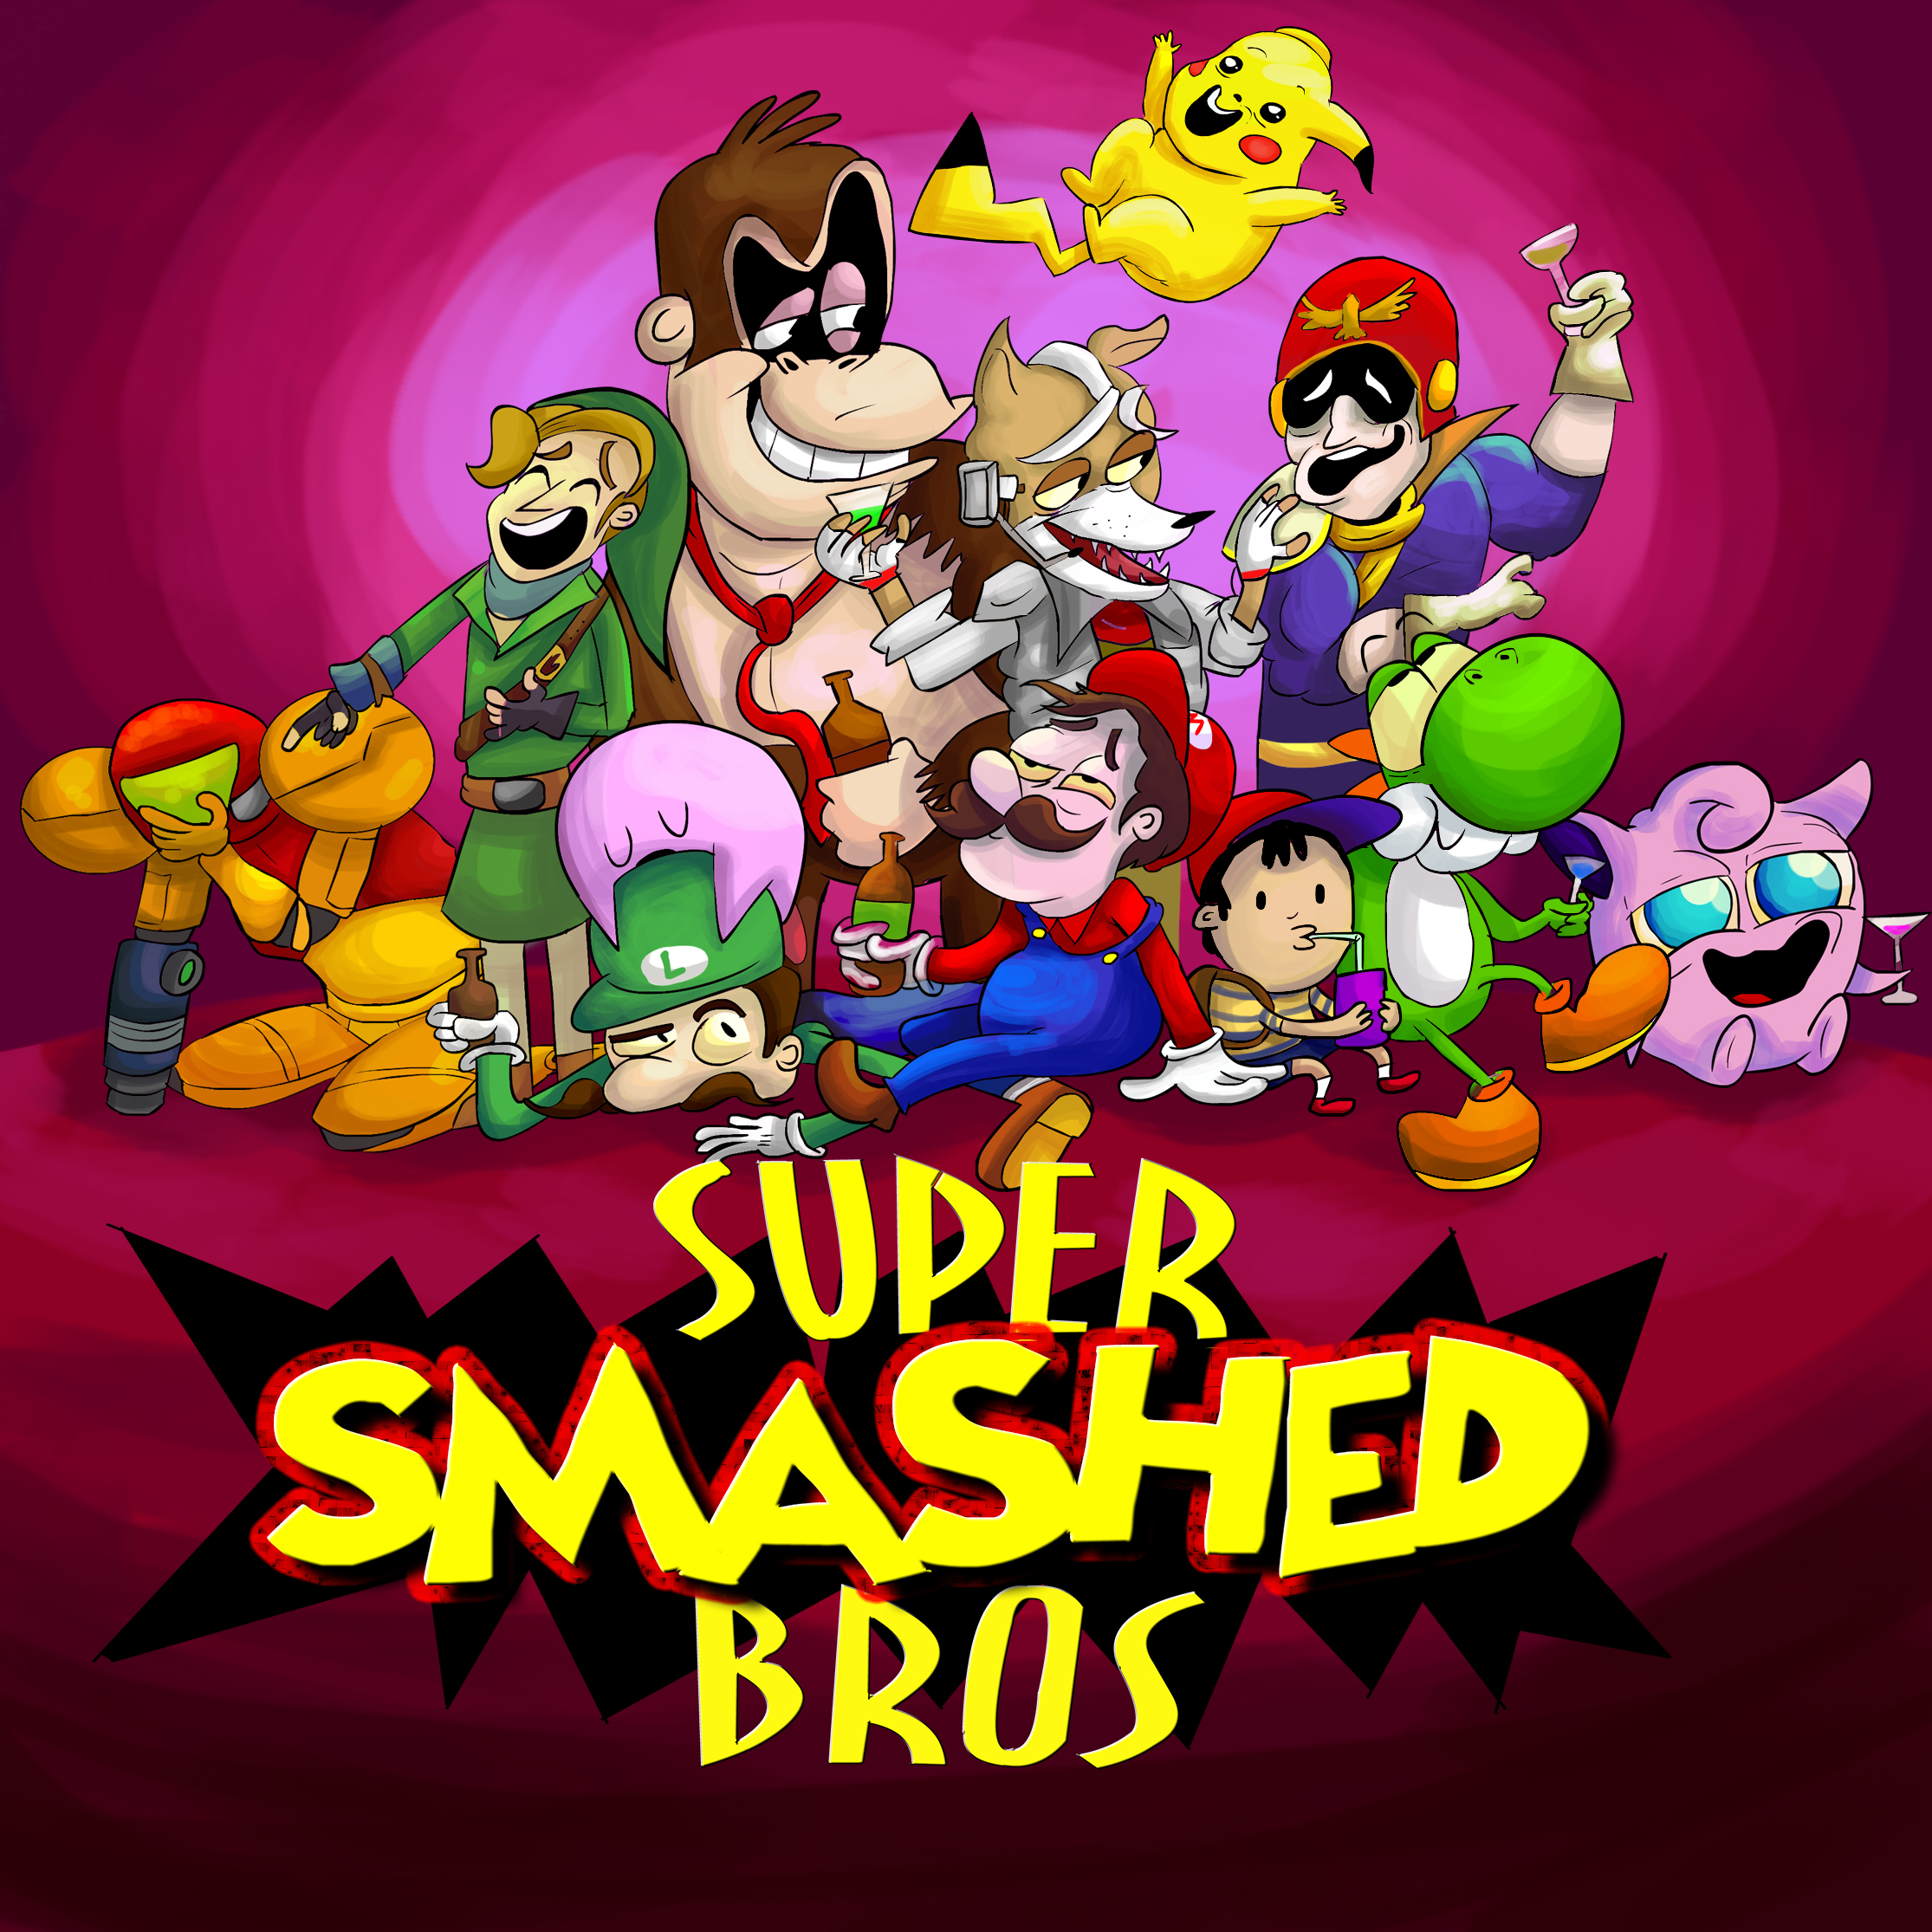 Super Smashed Brothers